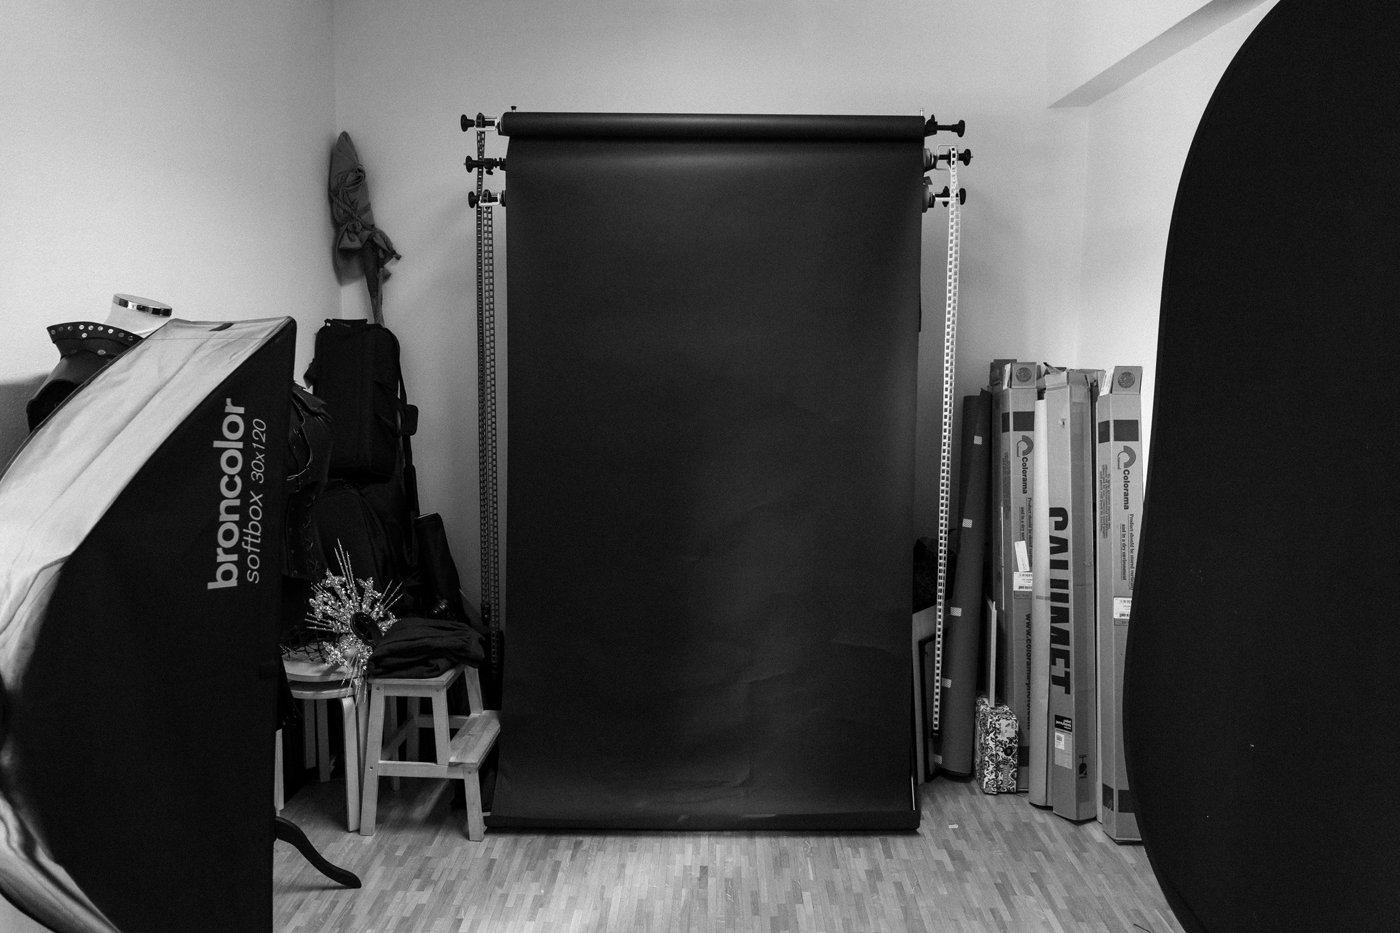 My studio: 1m35 of colorama paper fun I have worked on since the earliest days of purchasing this in 2015. I went through about 3 black backdrop rolls by now - but most of my rolls have been going strong since the start. it's pretty crooked - but I don't cut it off unless it's like literally falling apart from (ab)use as I don't always shoot full body and backdrop paper is expensive … Currently it has two new holes into it due to yesterday's evening shoot (woops).  The studio holds the following equipment: a broncolor siros 800, a move 1200 with 2 lamps, a beautydish, an octabox, two stripboxes (30x120cm on permanent lamps - my other is folded up and away), there is also a para, a picolight with various attachments and some various stuff that is either brandless or fun tools.